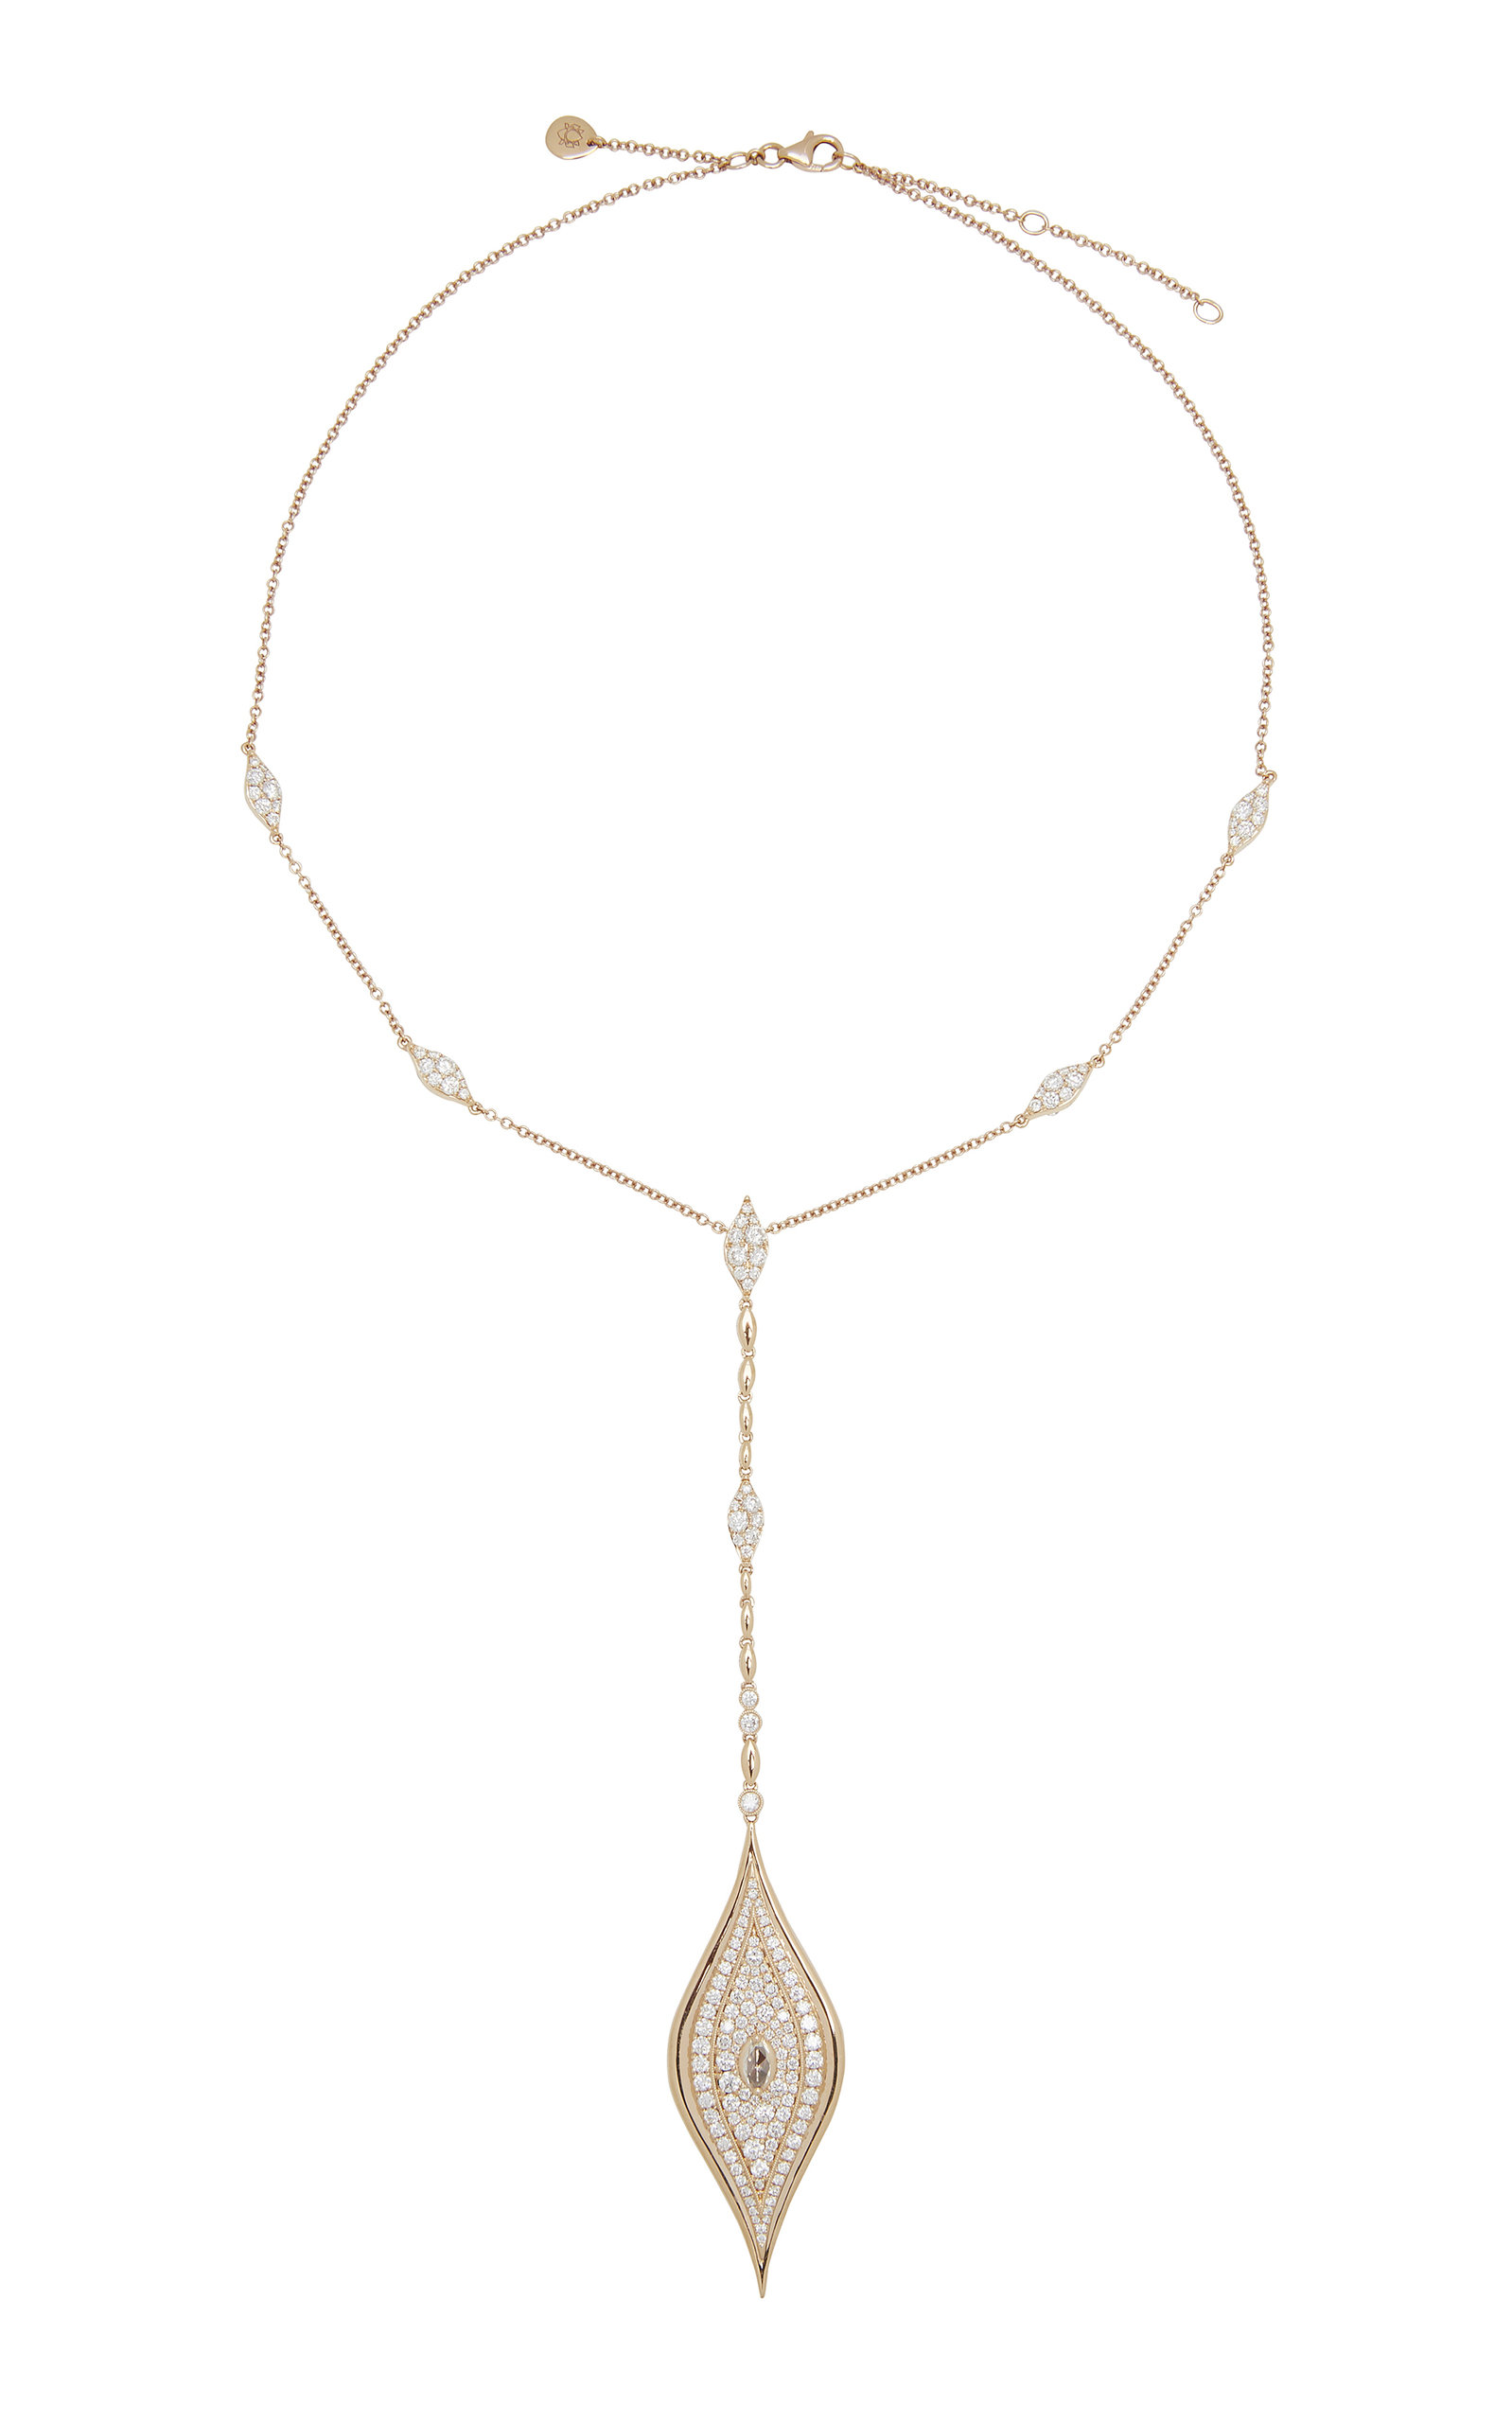 SARA WEINSTOCK DONNA ROSE CUT NECKLACE